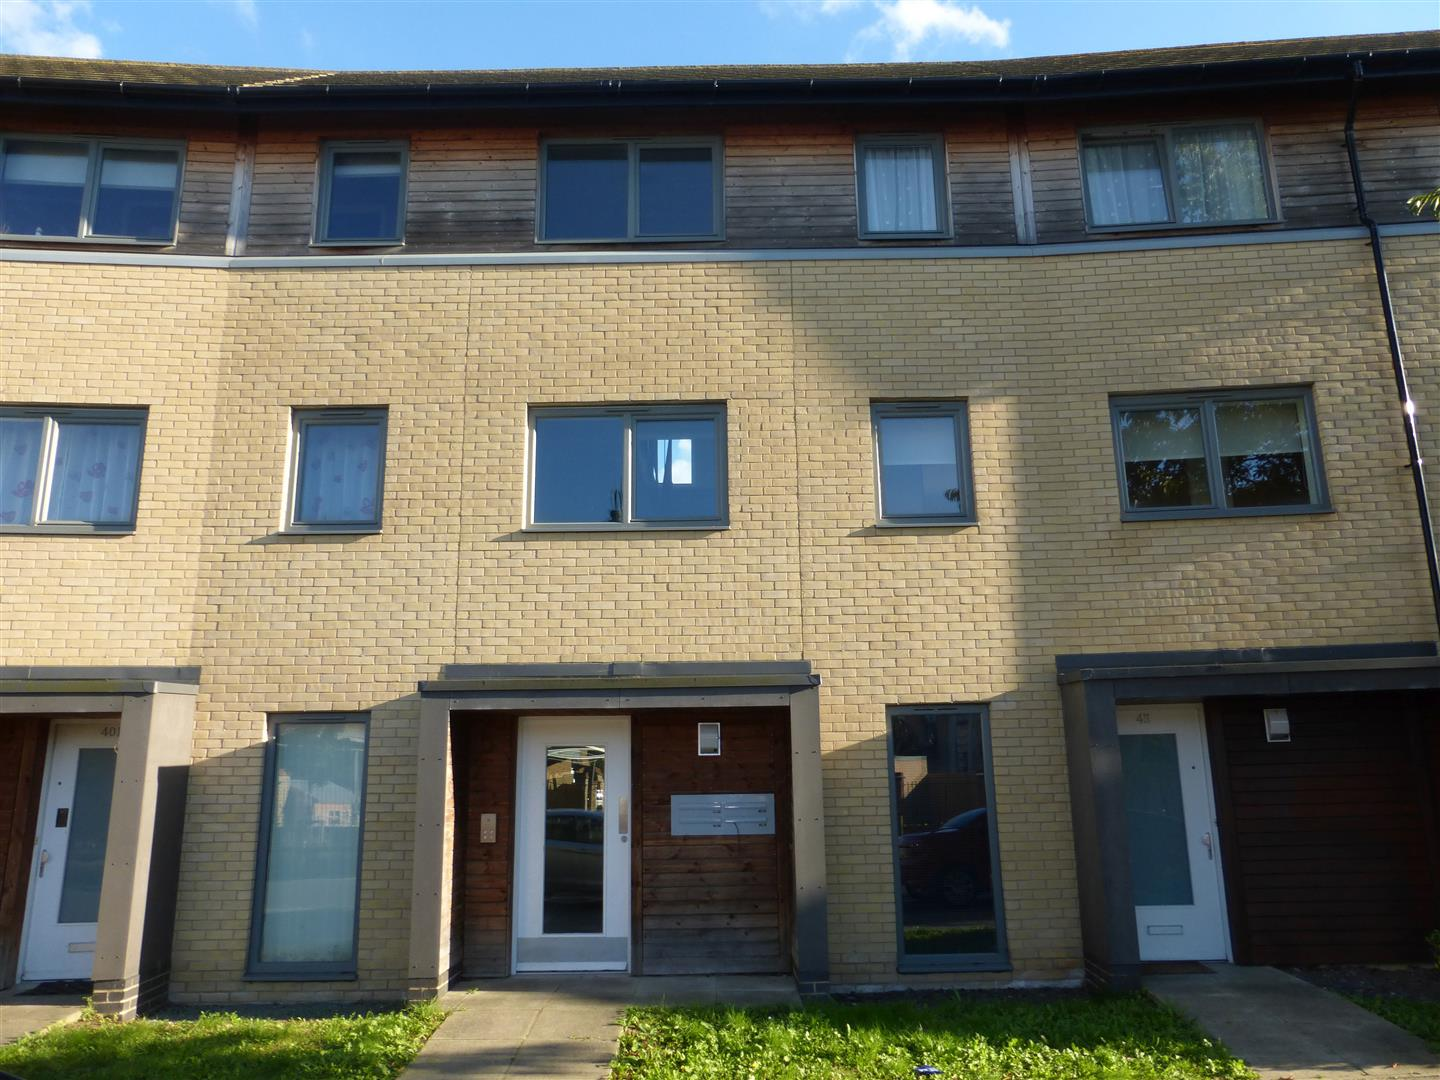 1 Bedroom Property For Sale In West Lake Avenue Hampton Vale Peterborough PE7